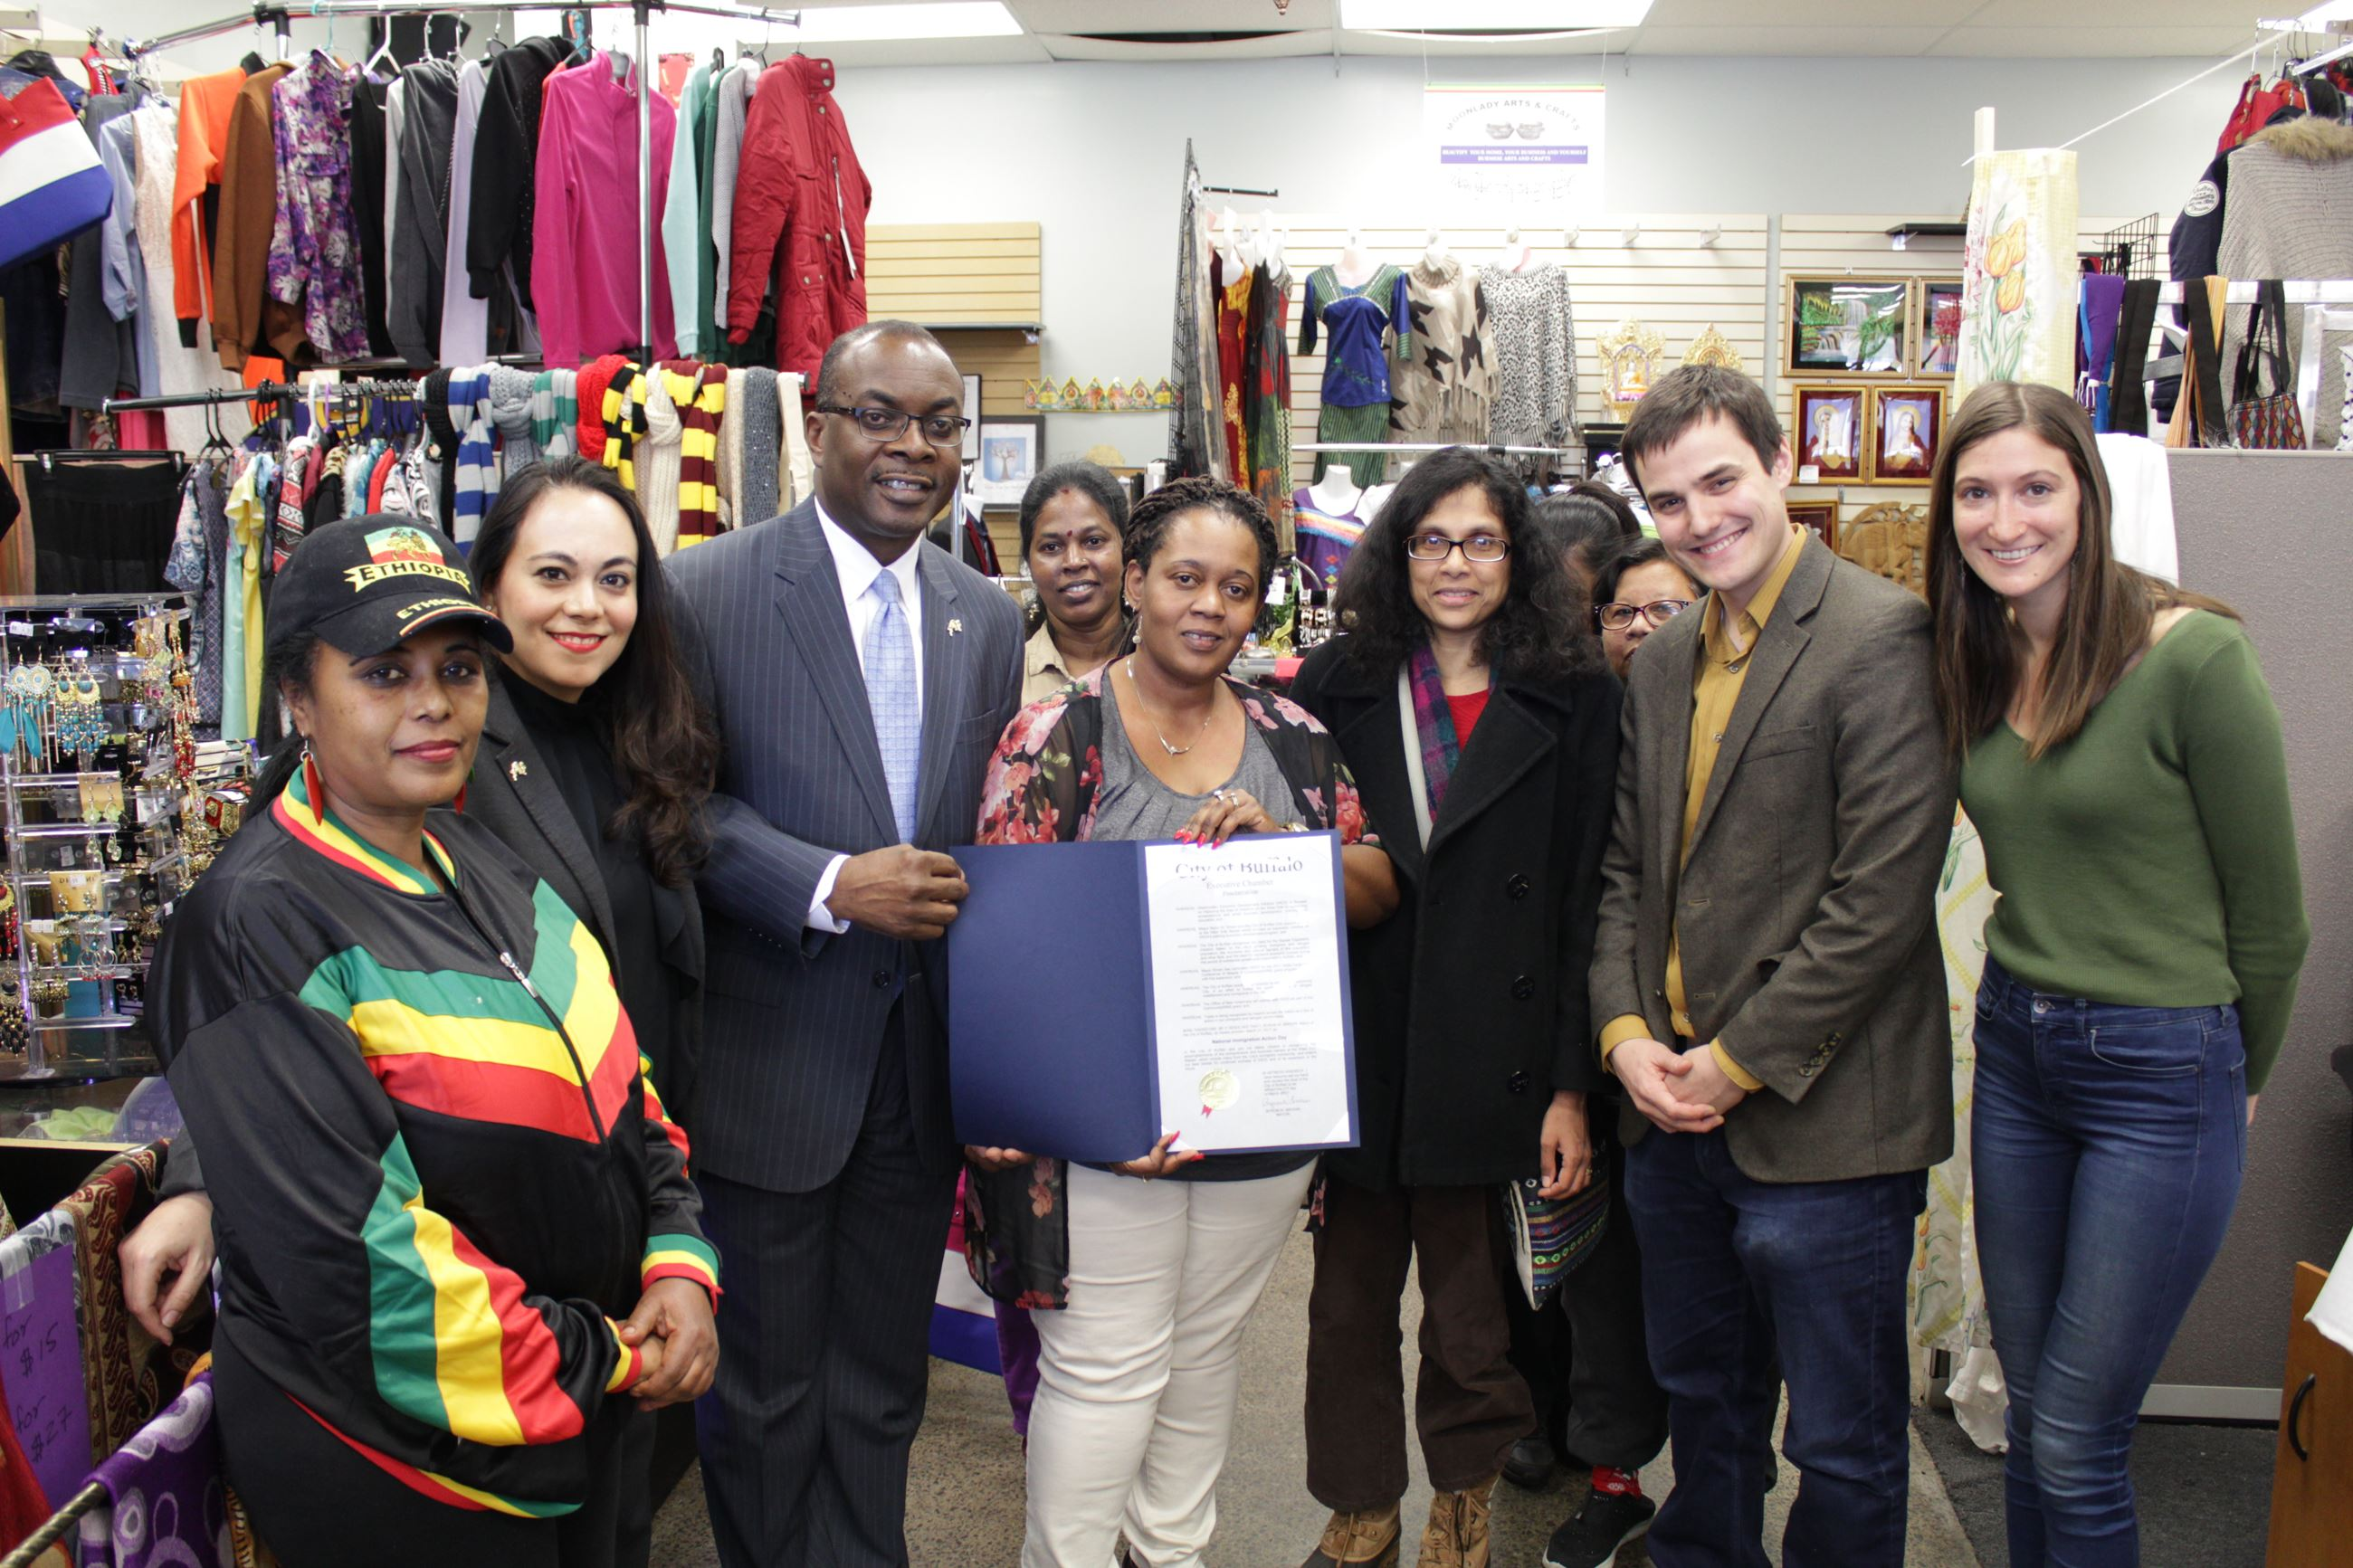 Mayor Brown Proclaims Today U.S. Conference Of Mayor's National Day of Immigration Action in Buffalo